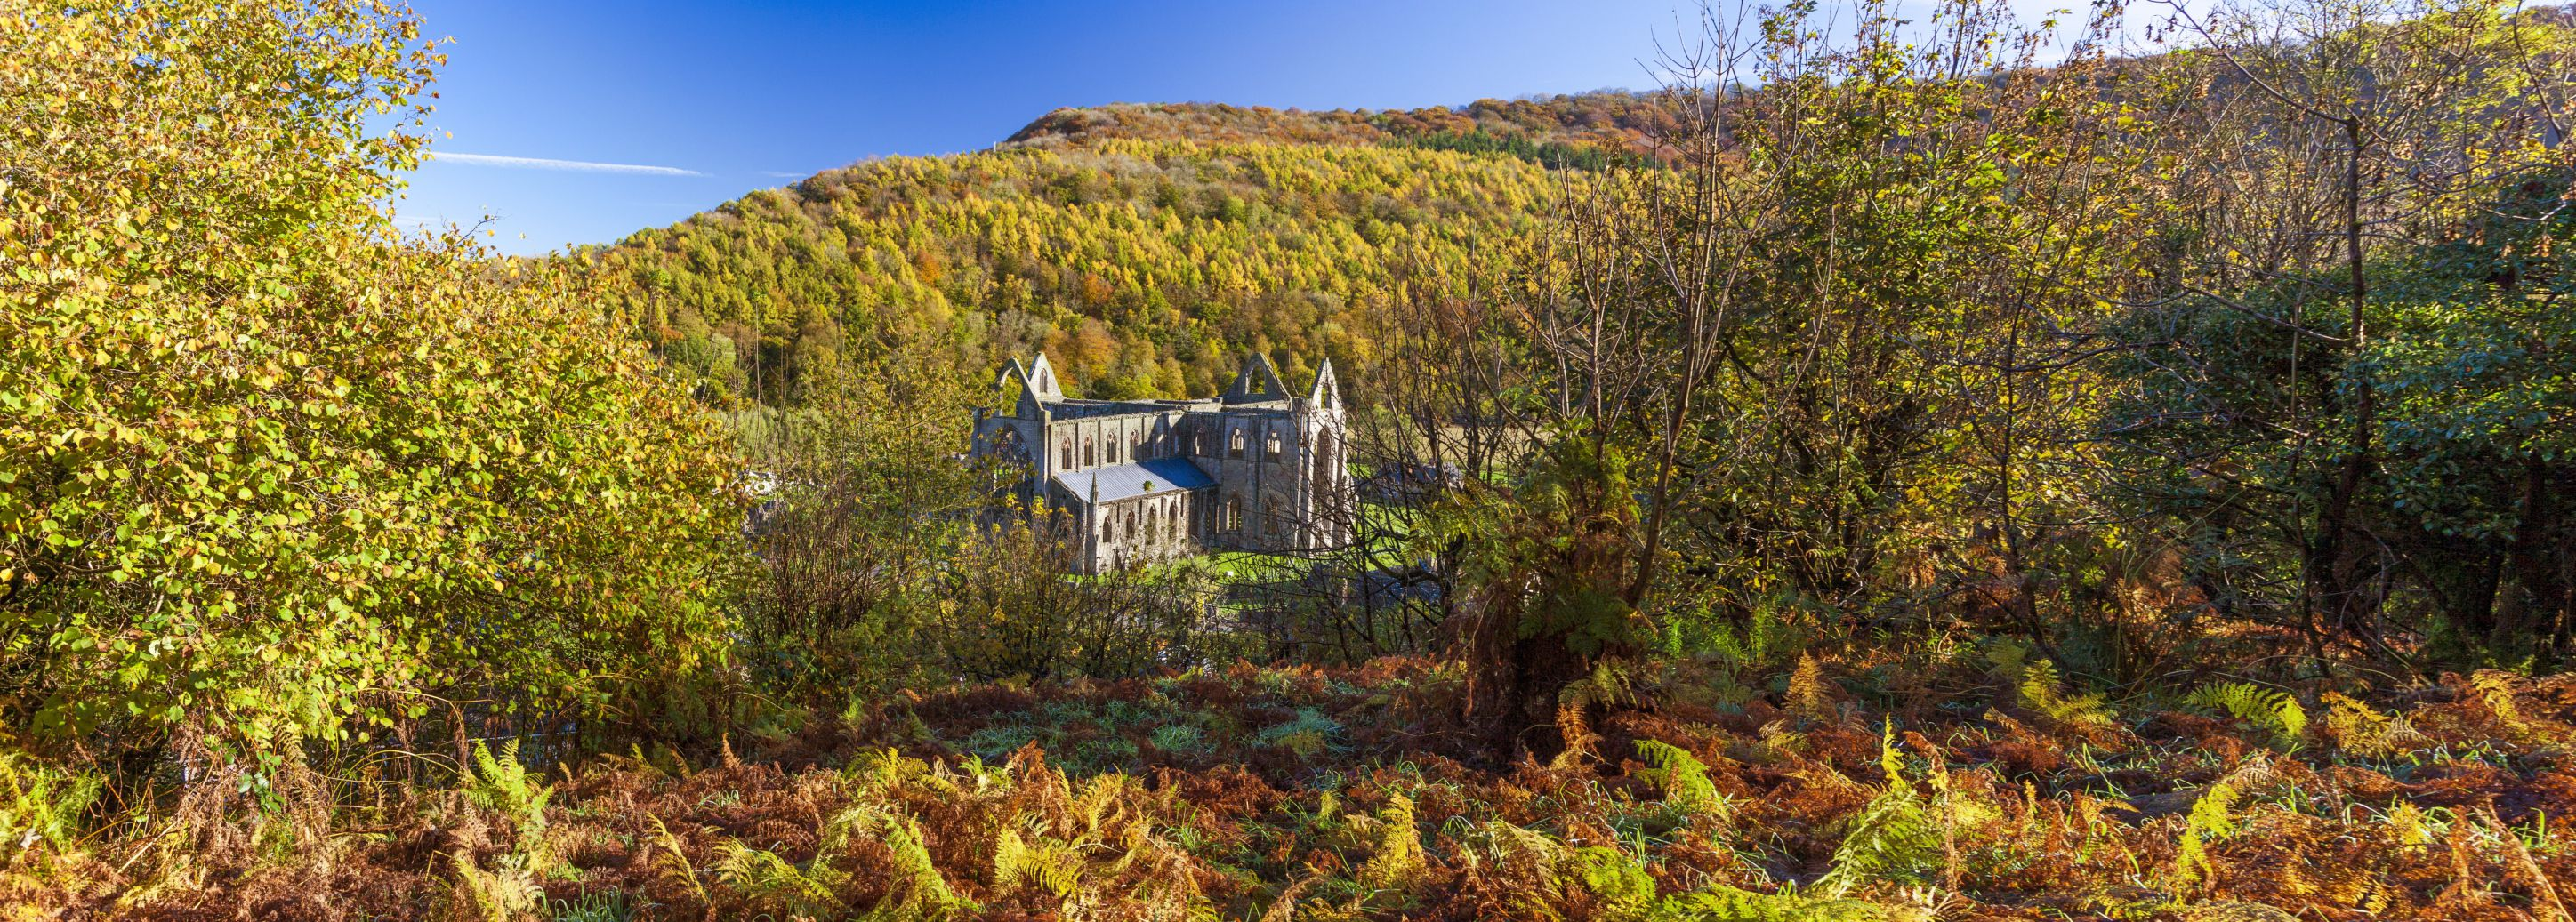 """natures role in tintern abbey A summary of """"tintern abbey"""" in william wordsworth's wordsworth's poetry learn exactly what happened in this chapter, scene, or section of wordsworth's poetry and what it means."""